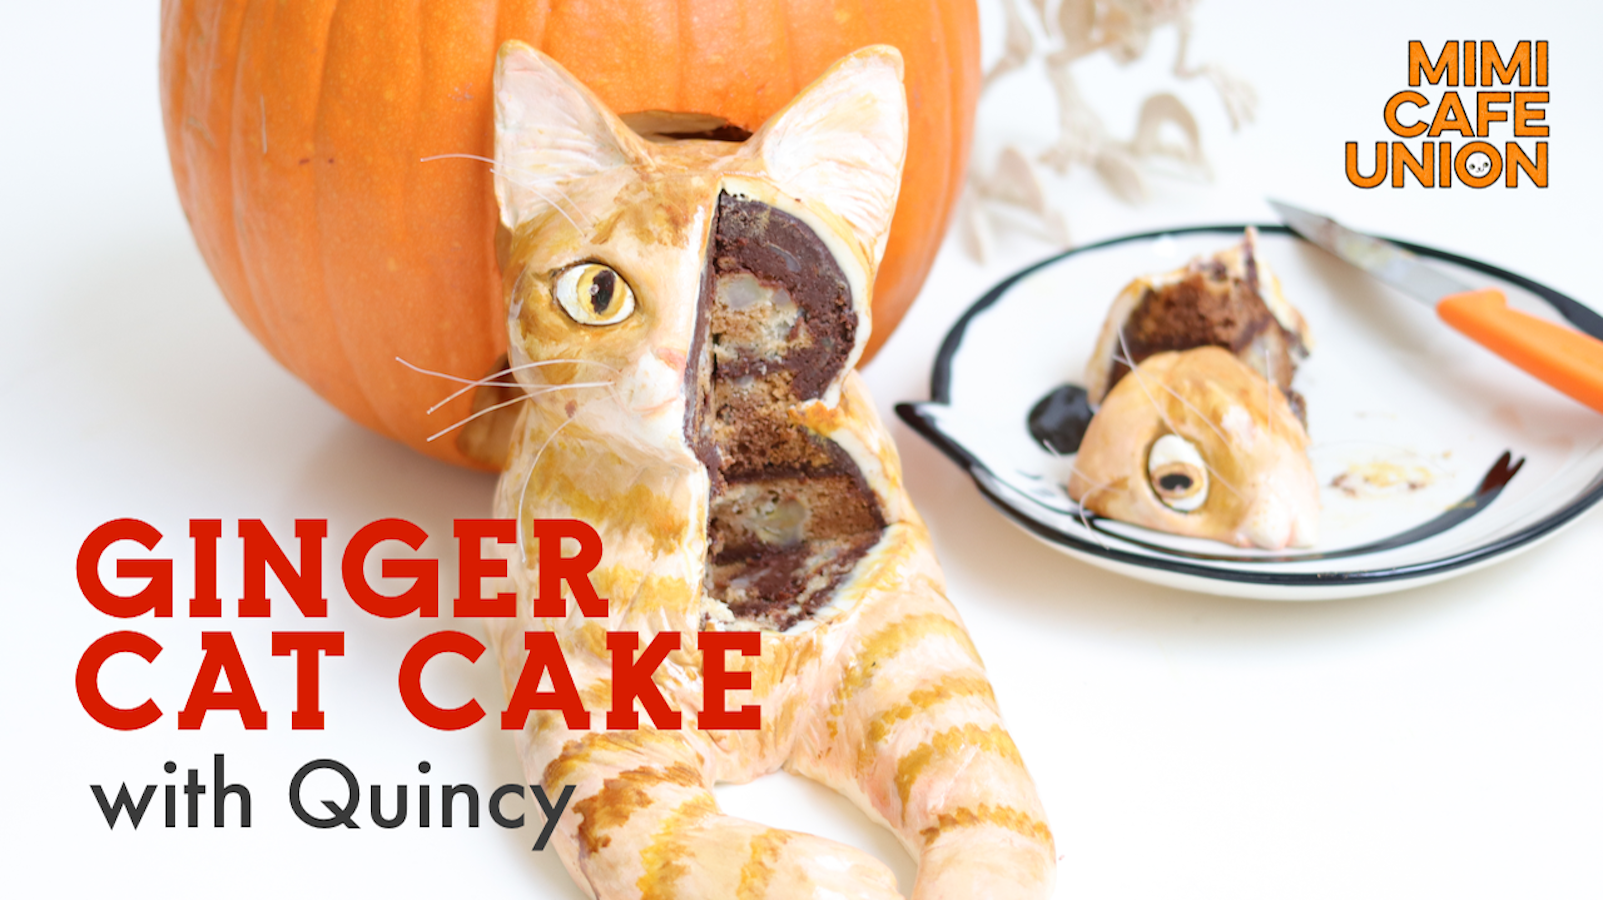 GINGER CAT CAKE with Quincy